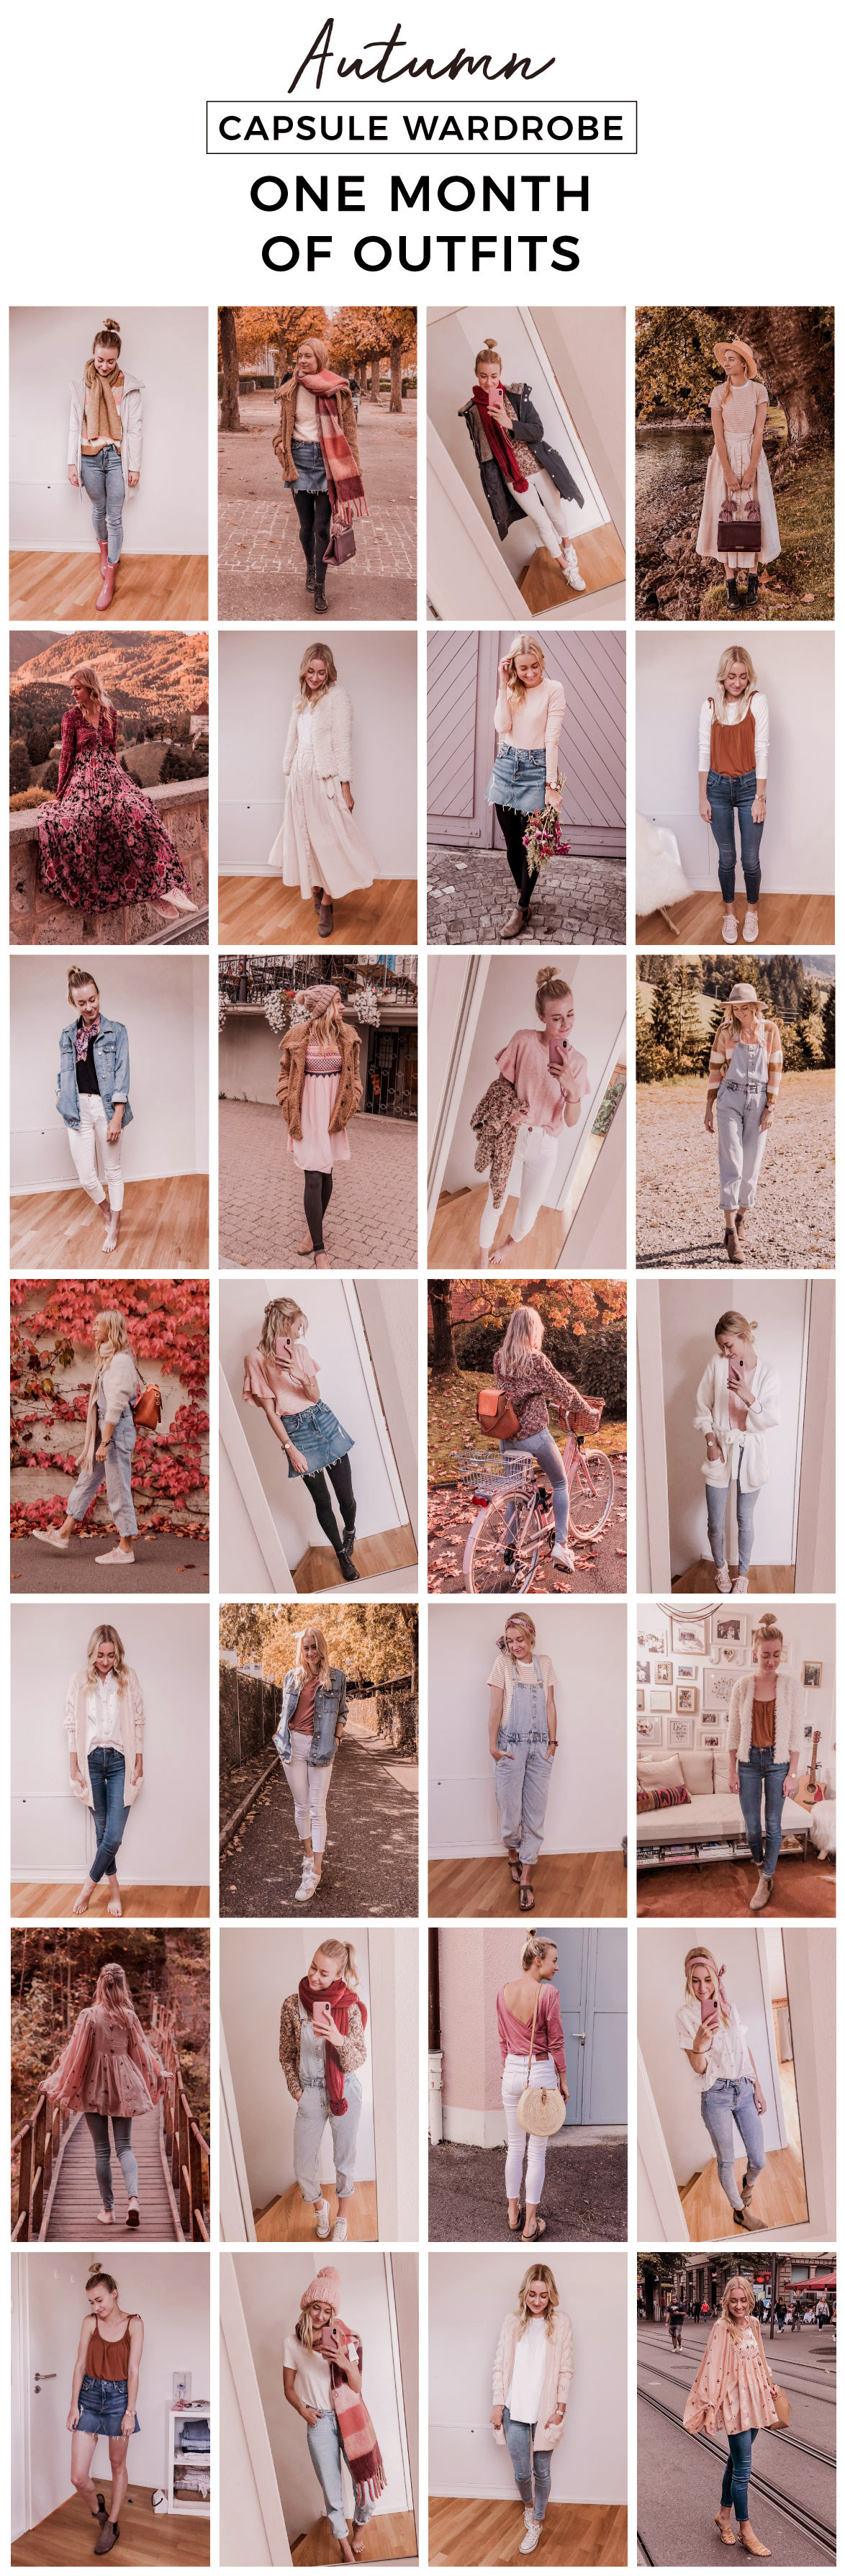 Autumn capsule wardrobe outfits